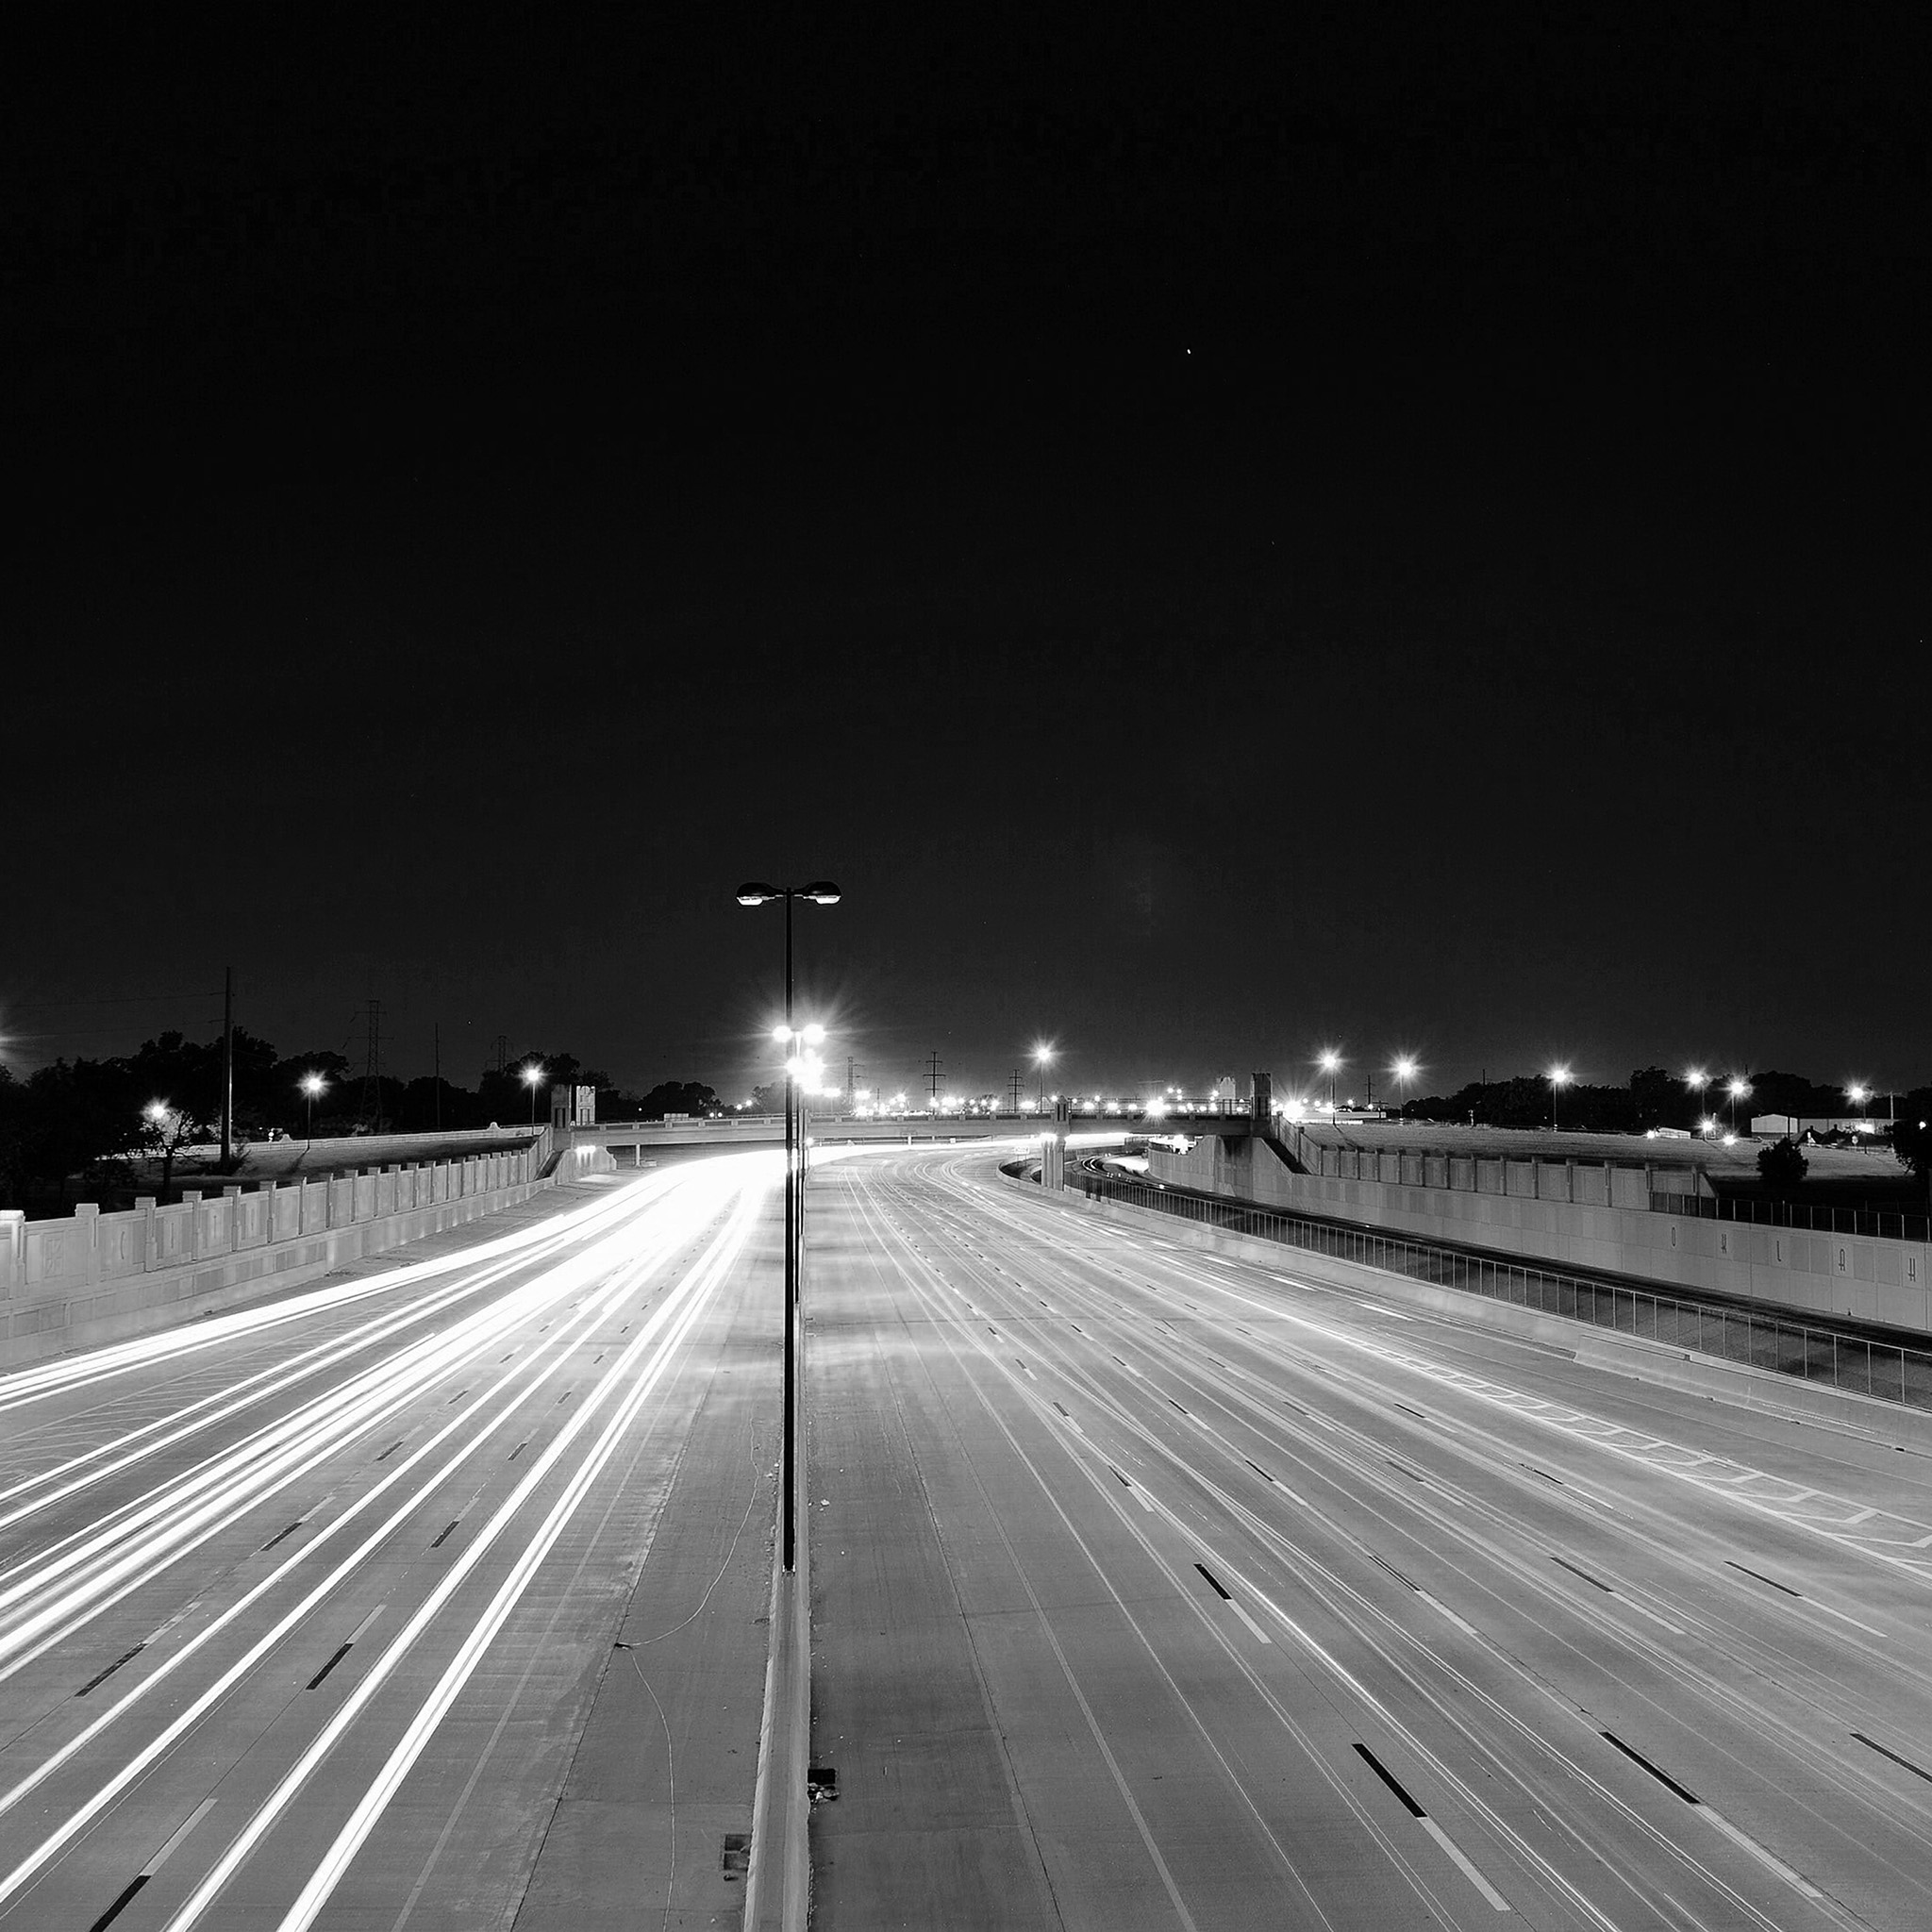 Mv61-road-street-city-night-car-lights-dark-bw-wallpaper